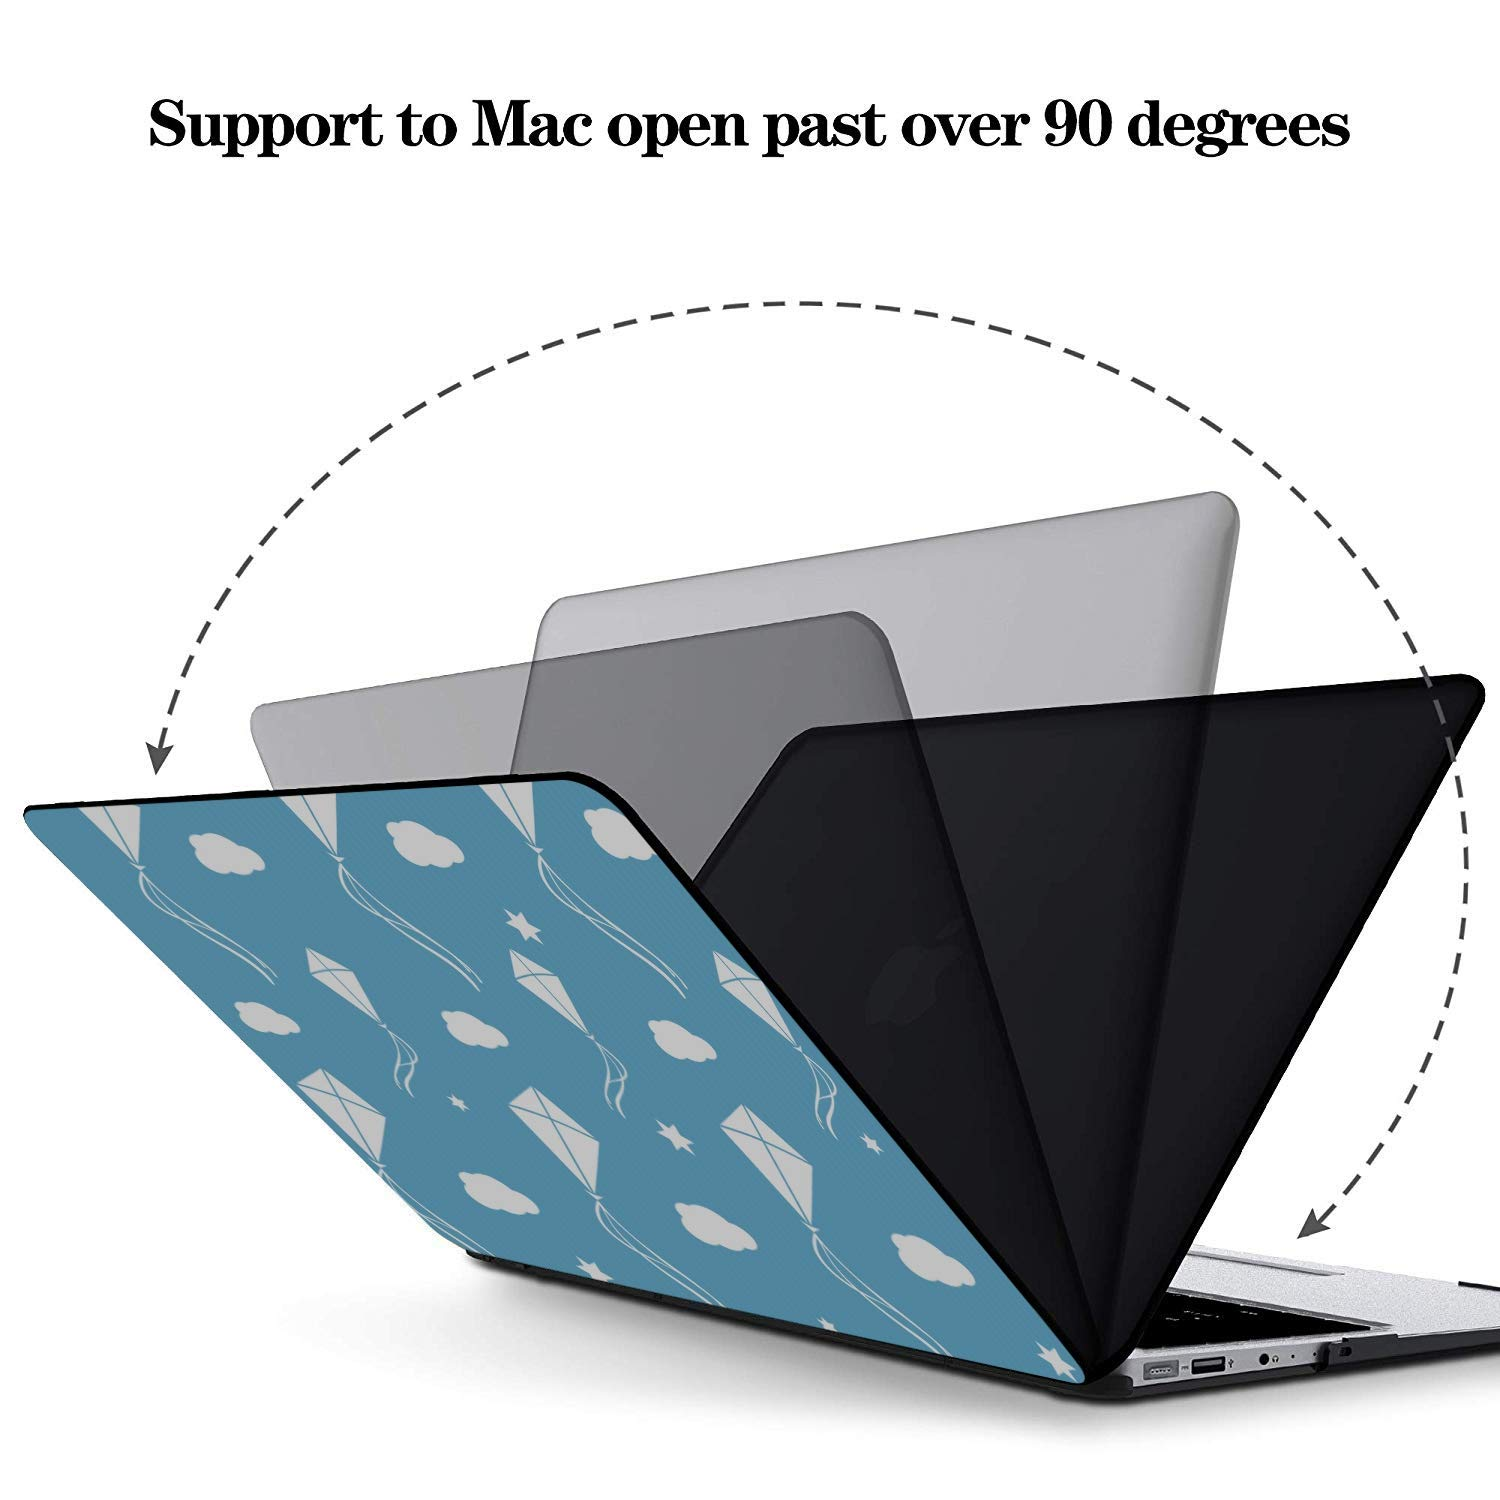 Cover for Laptop Spring Children Play Game Toy Kite Plastic Hard Shell Compatible Mac Air 11 Pro 13 15 13 Inch Laptop Case Protection for MacBook 2016-2019 Version